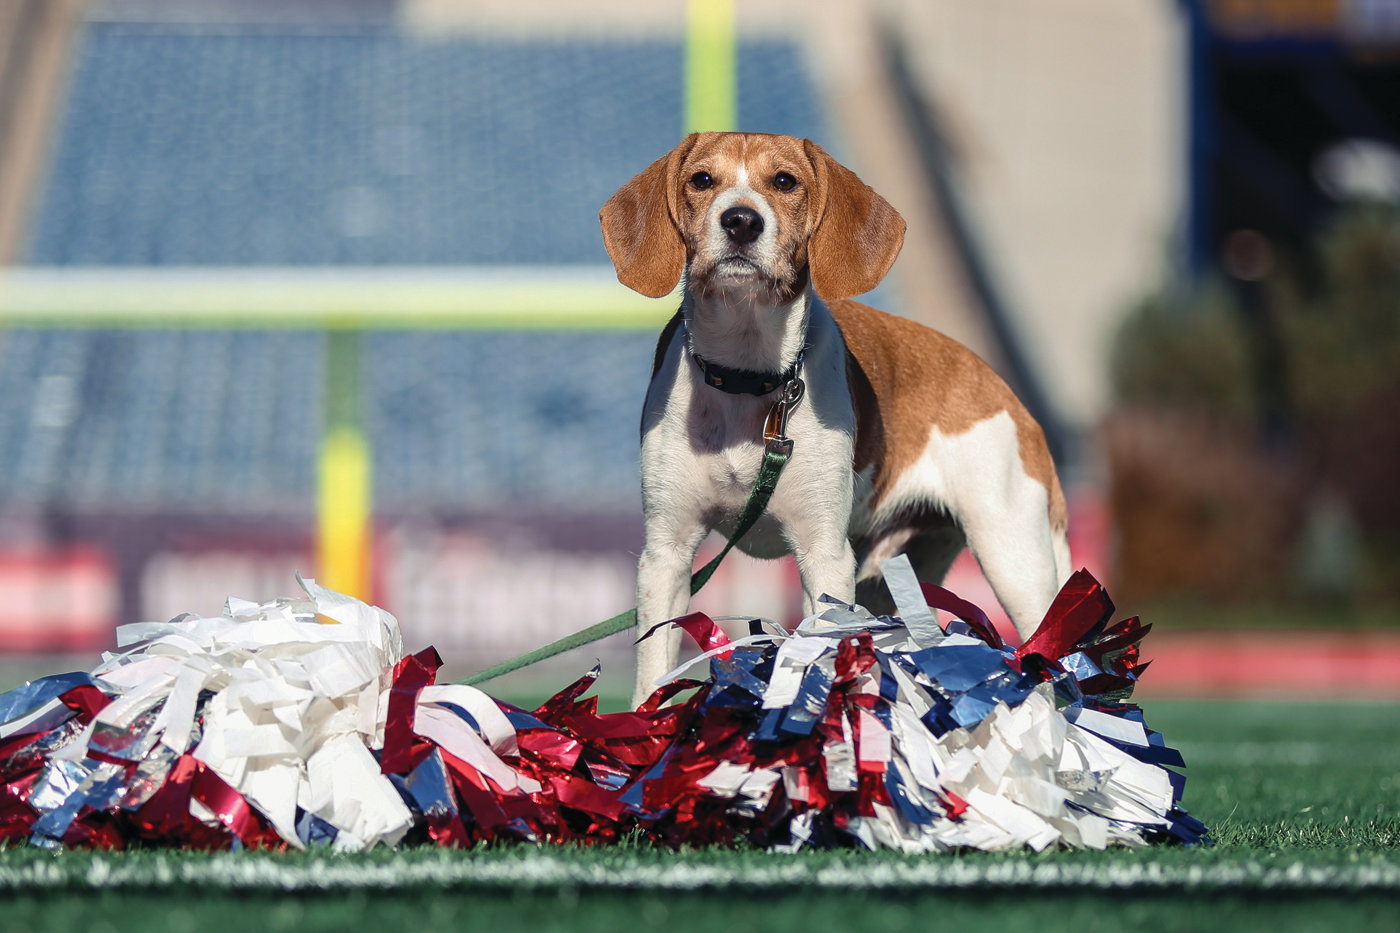 A STAR IS BORN: Goose, a beagle mix with some fierce chihuahua blended in as well, will be taking the field alongside some of the cutest shelter pups in the world for Animal Planet's 14th annual Puppy Bowl, airing at 3 p.m. on Animal Planet.